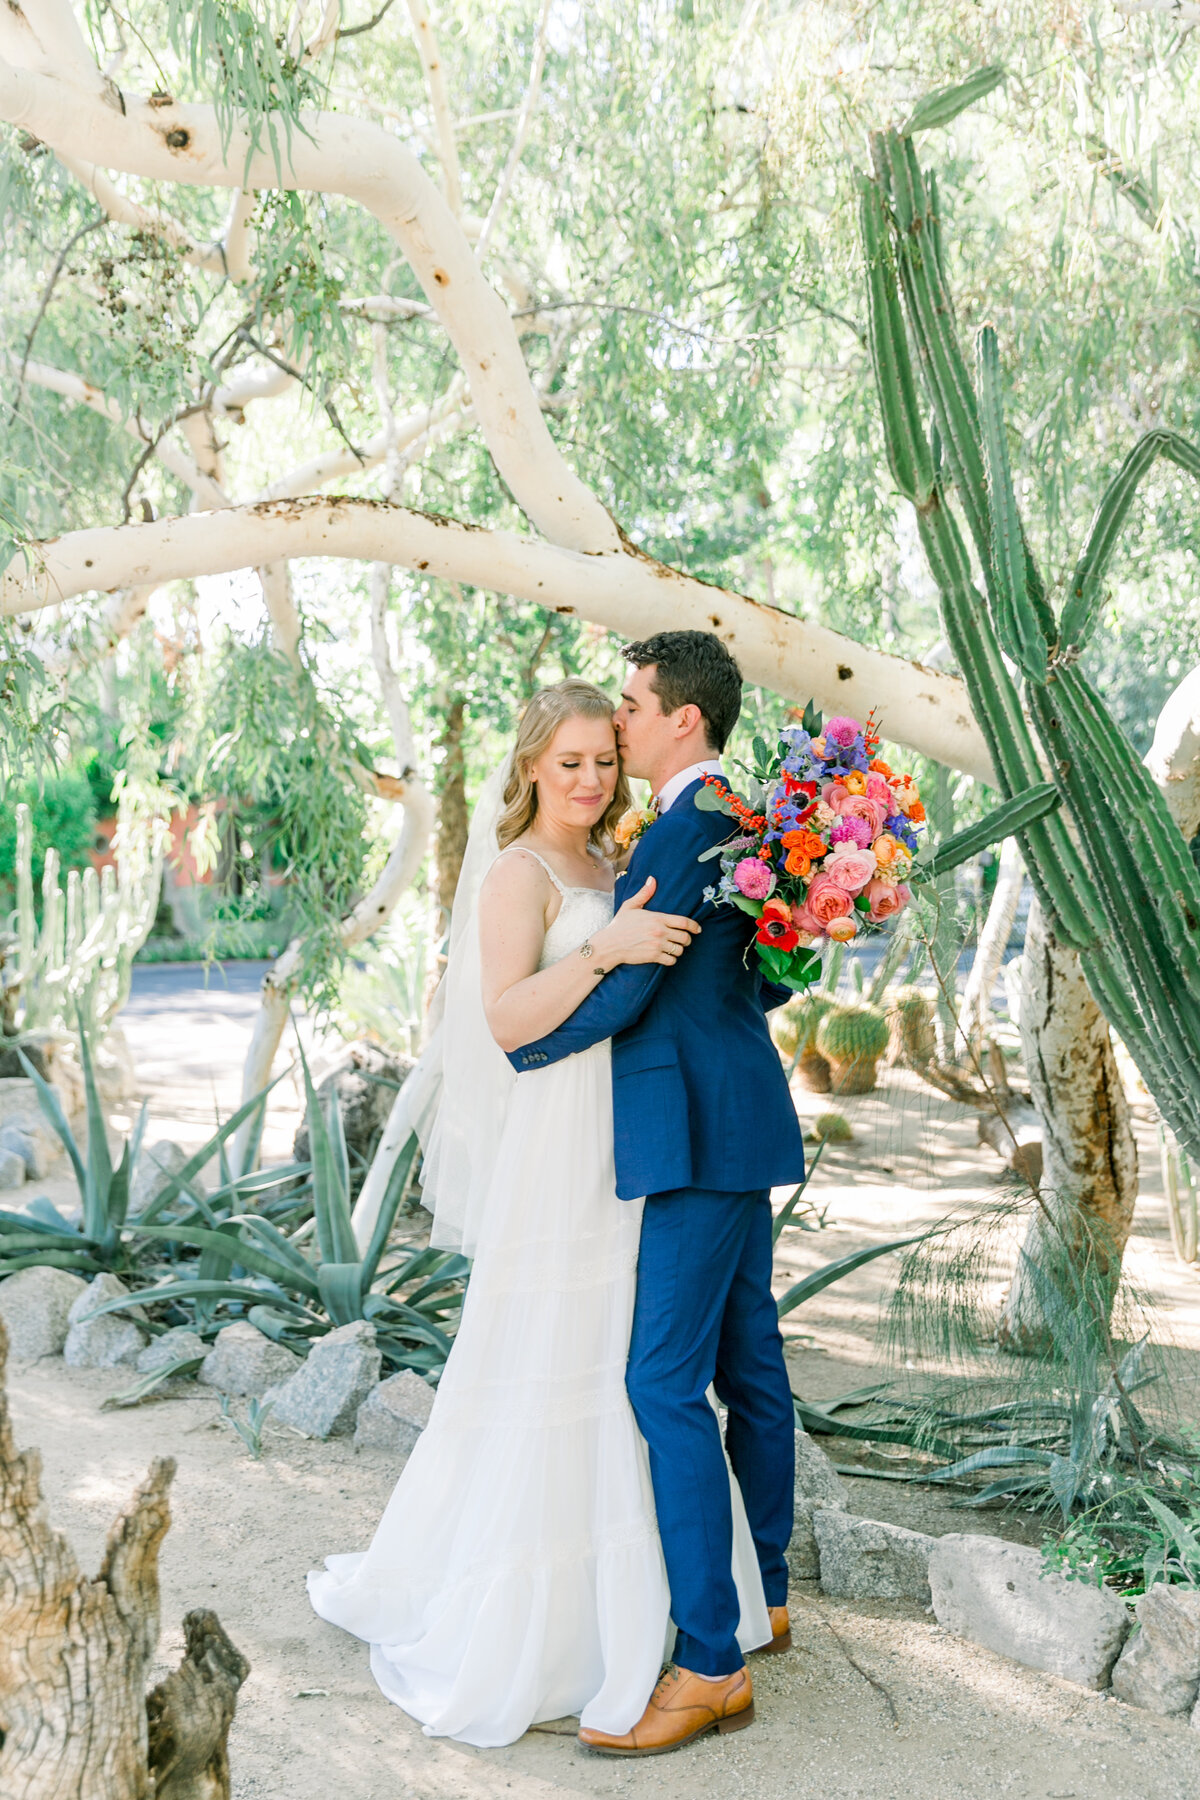 Karlie Colleen Photography - BooJum Venue - Phoenix Arizona - Zack & Chelsea-156